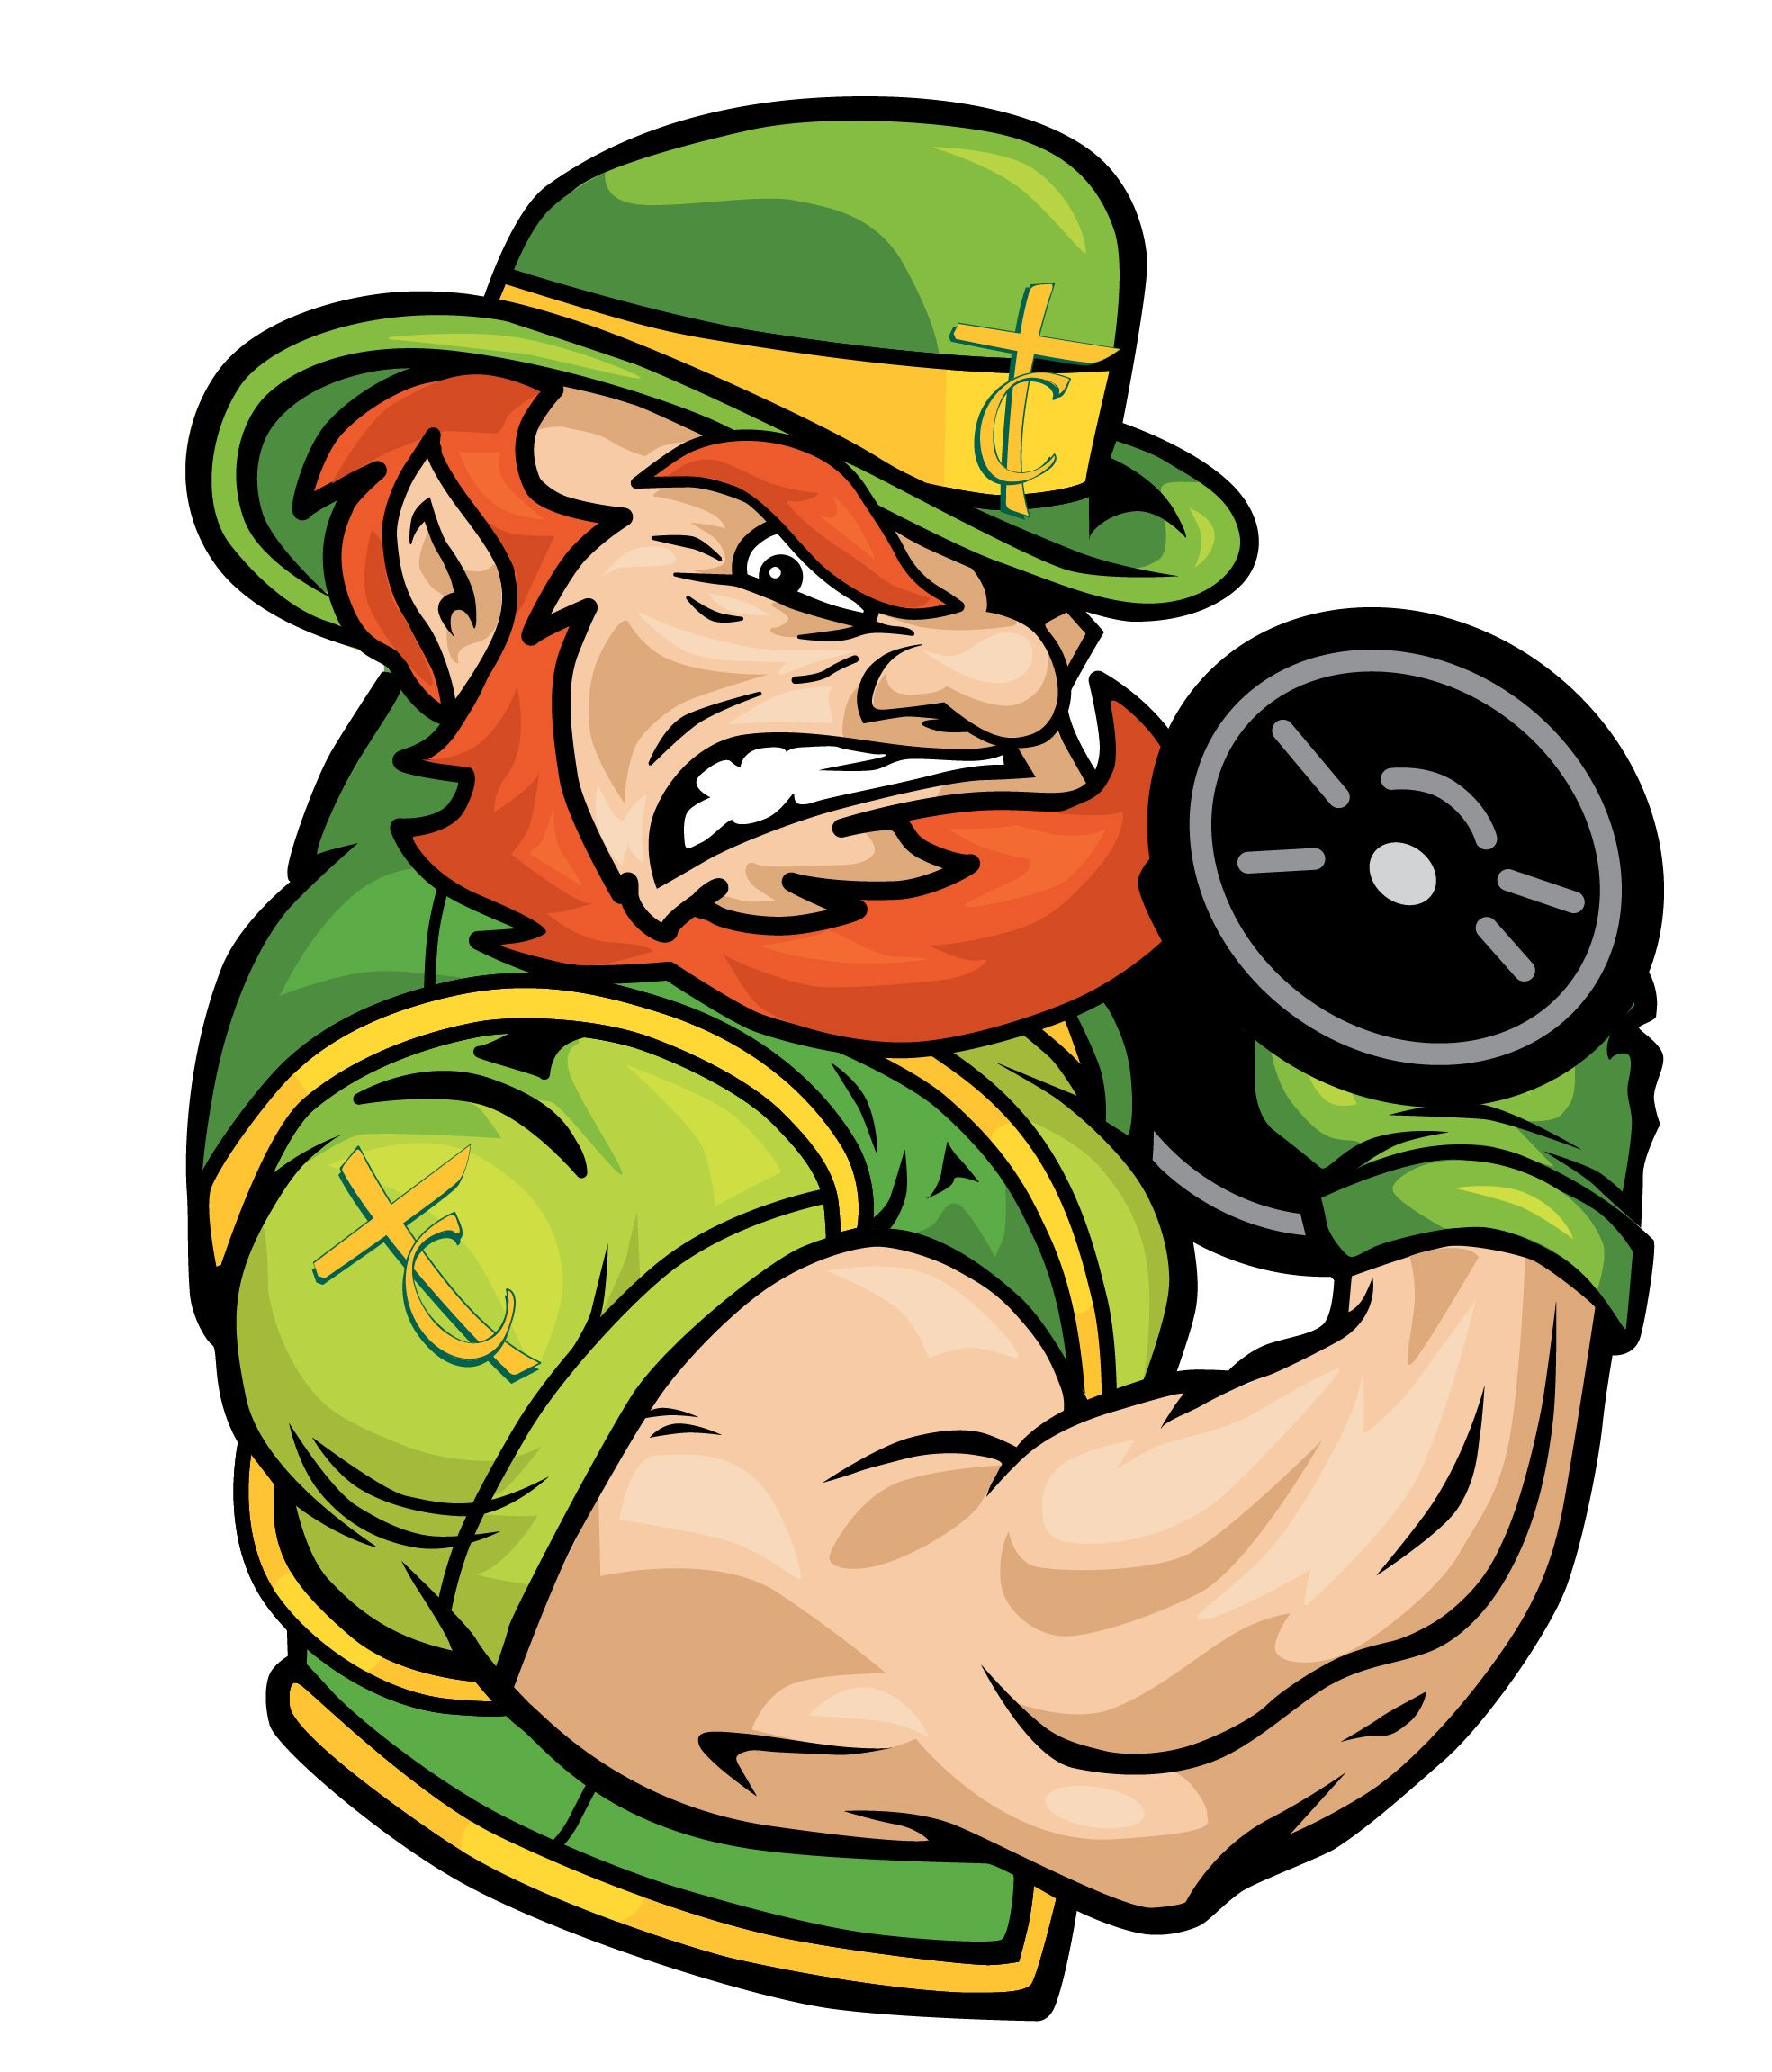 tchs leprechaun weight lifting logo 3m certified vehicle wraps rh pinterest com